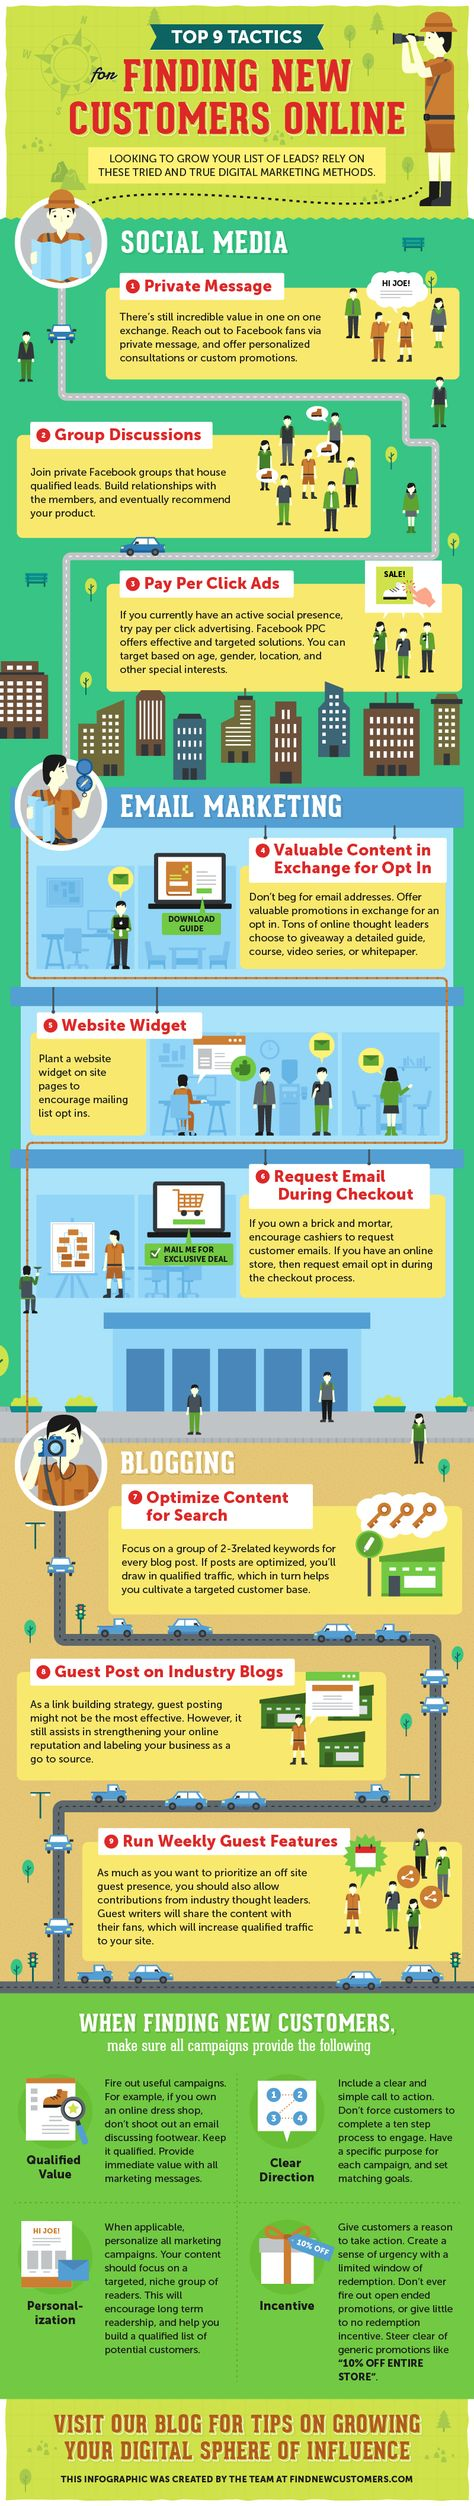 Top 9 Tactics for Finding New Customers Online [Infographic]